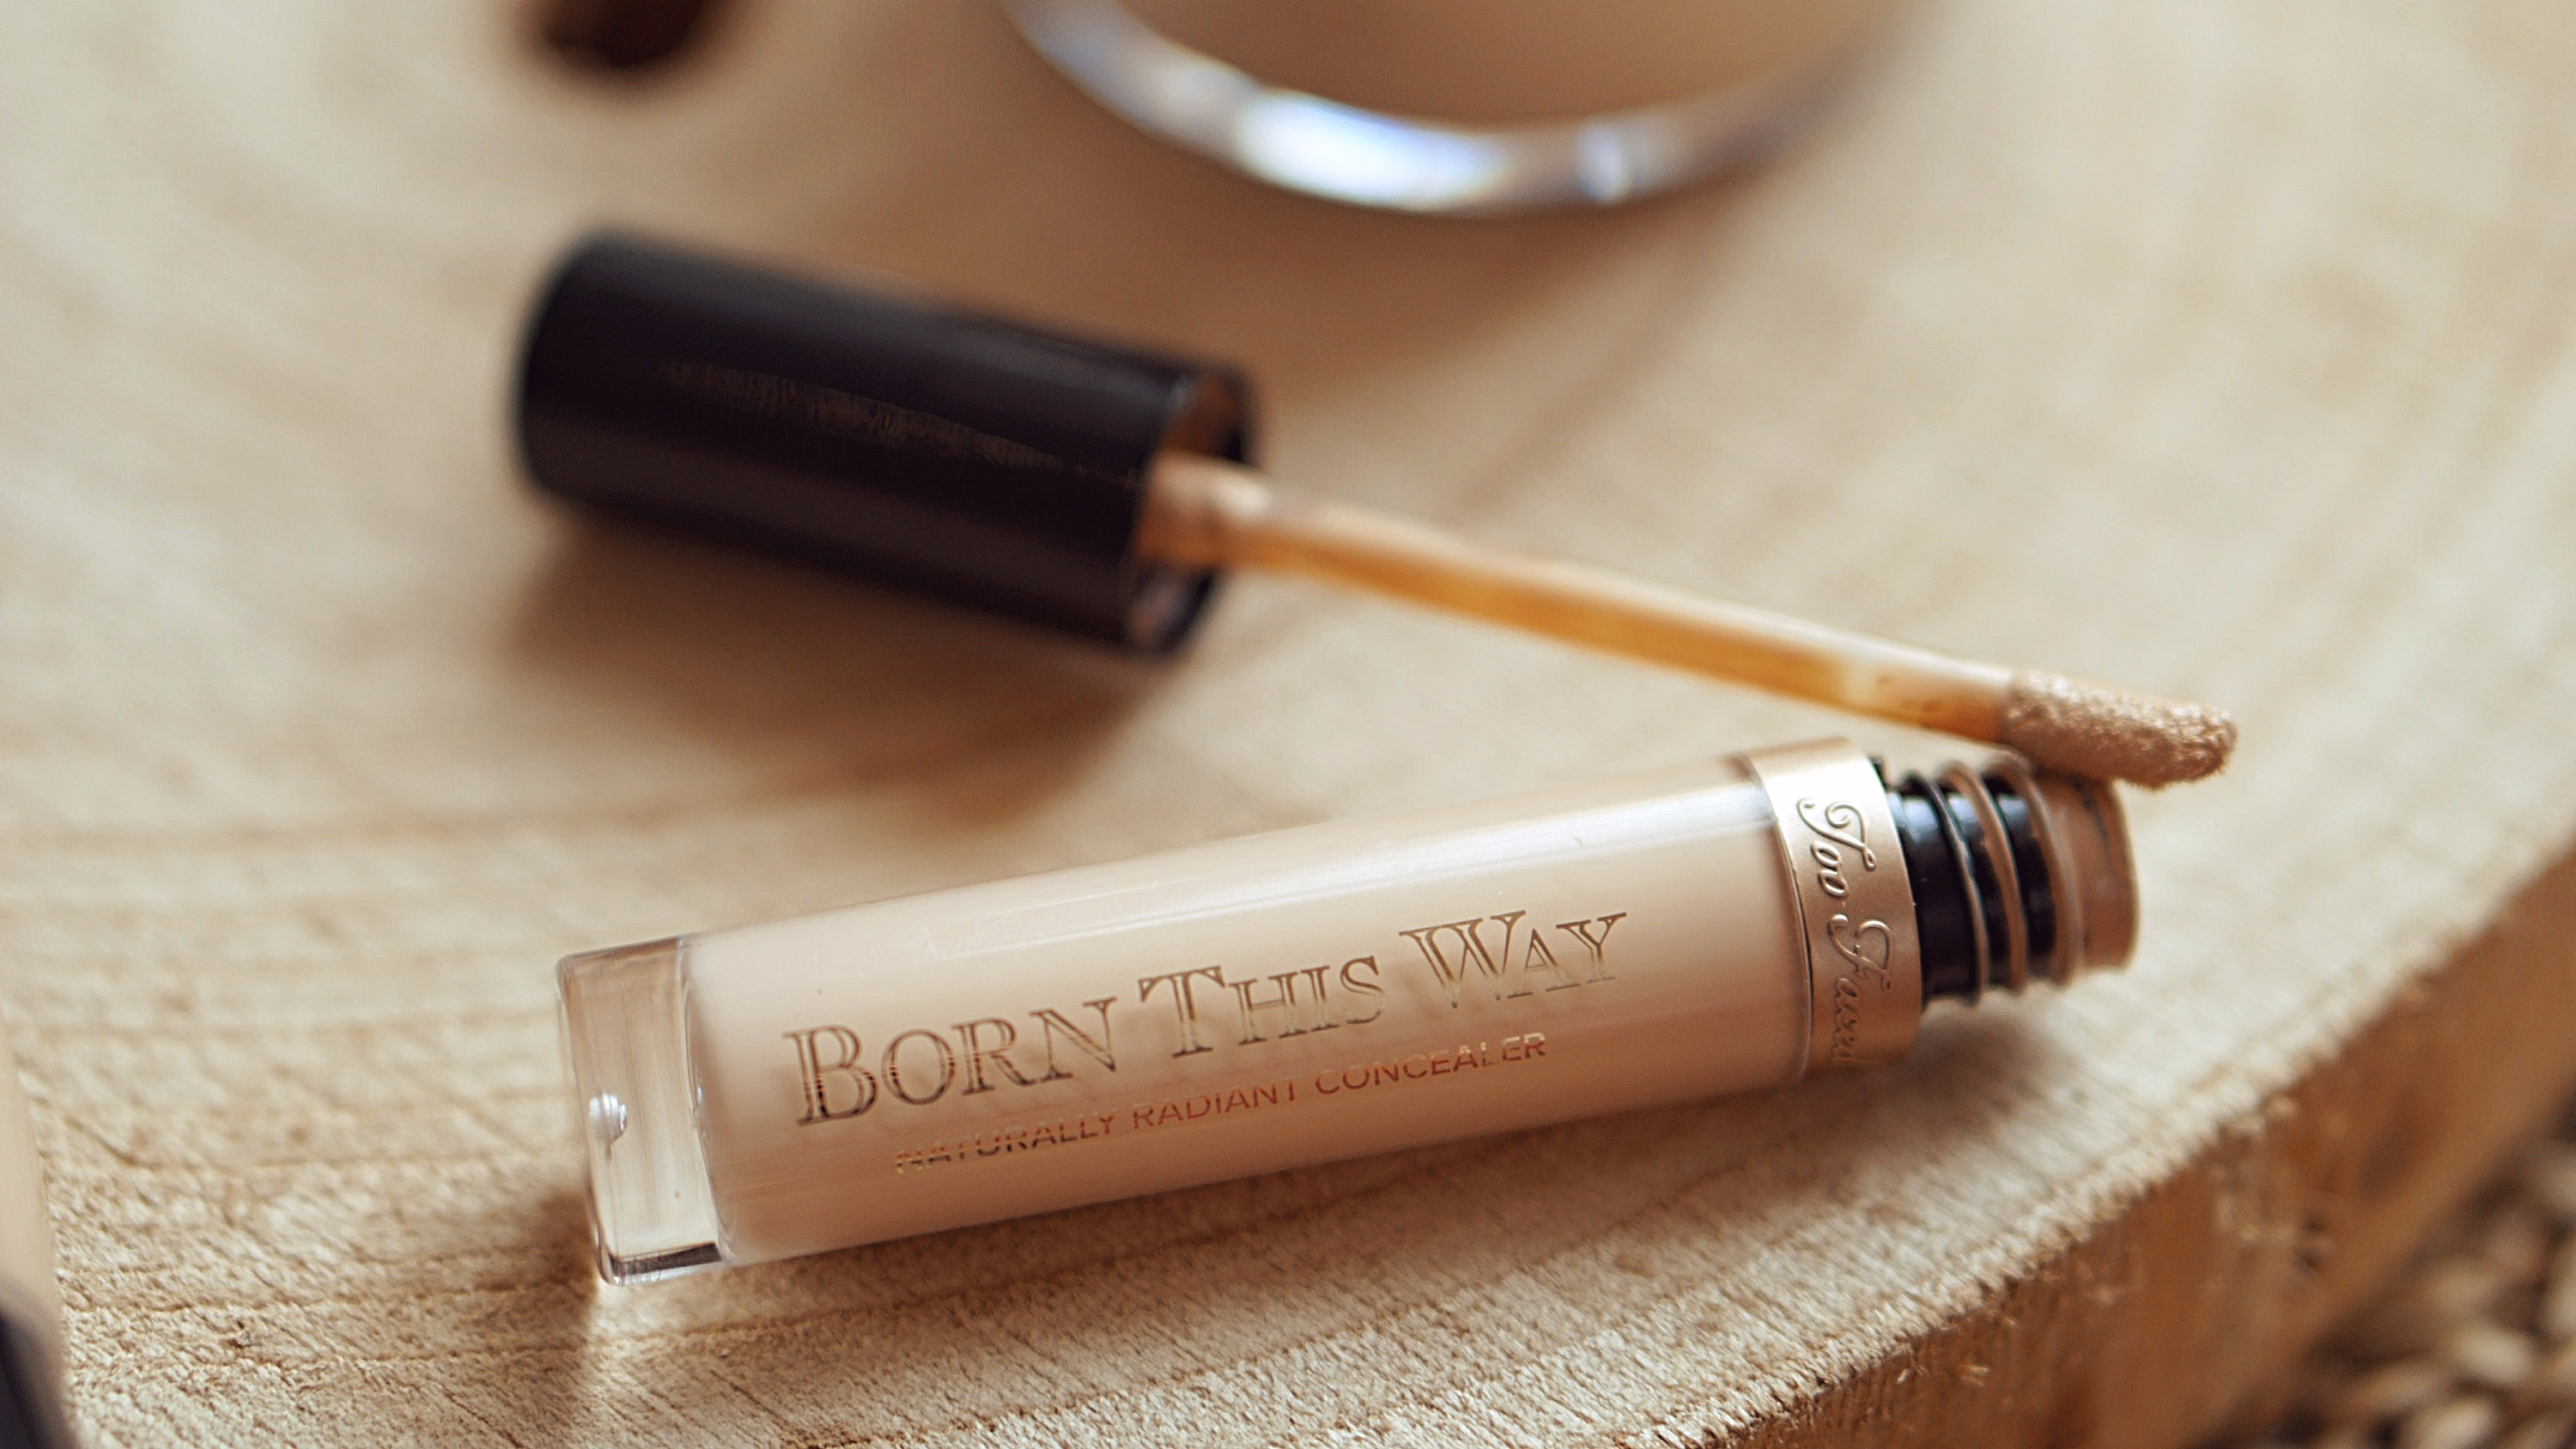 Top & Fop OCTOBRE bonjourblondie anti cernes born this way too faced avis